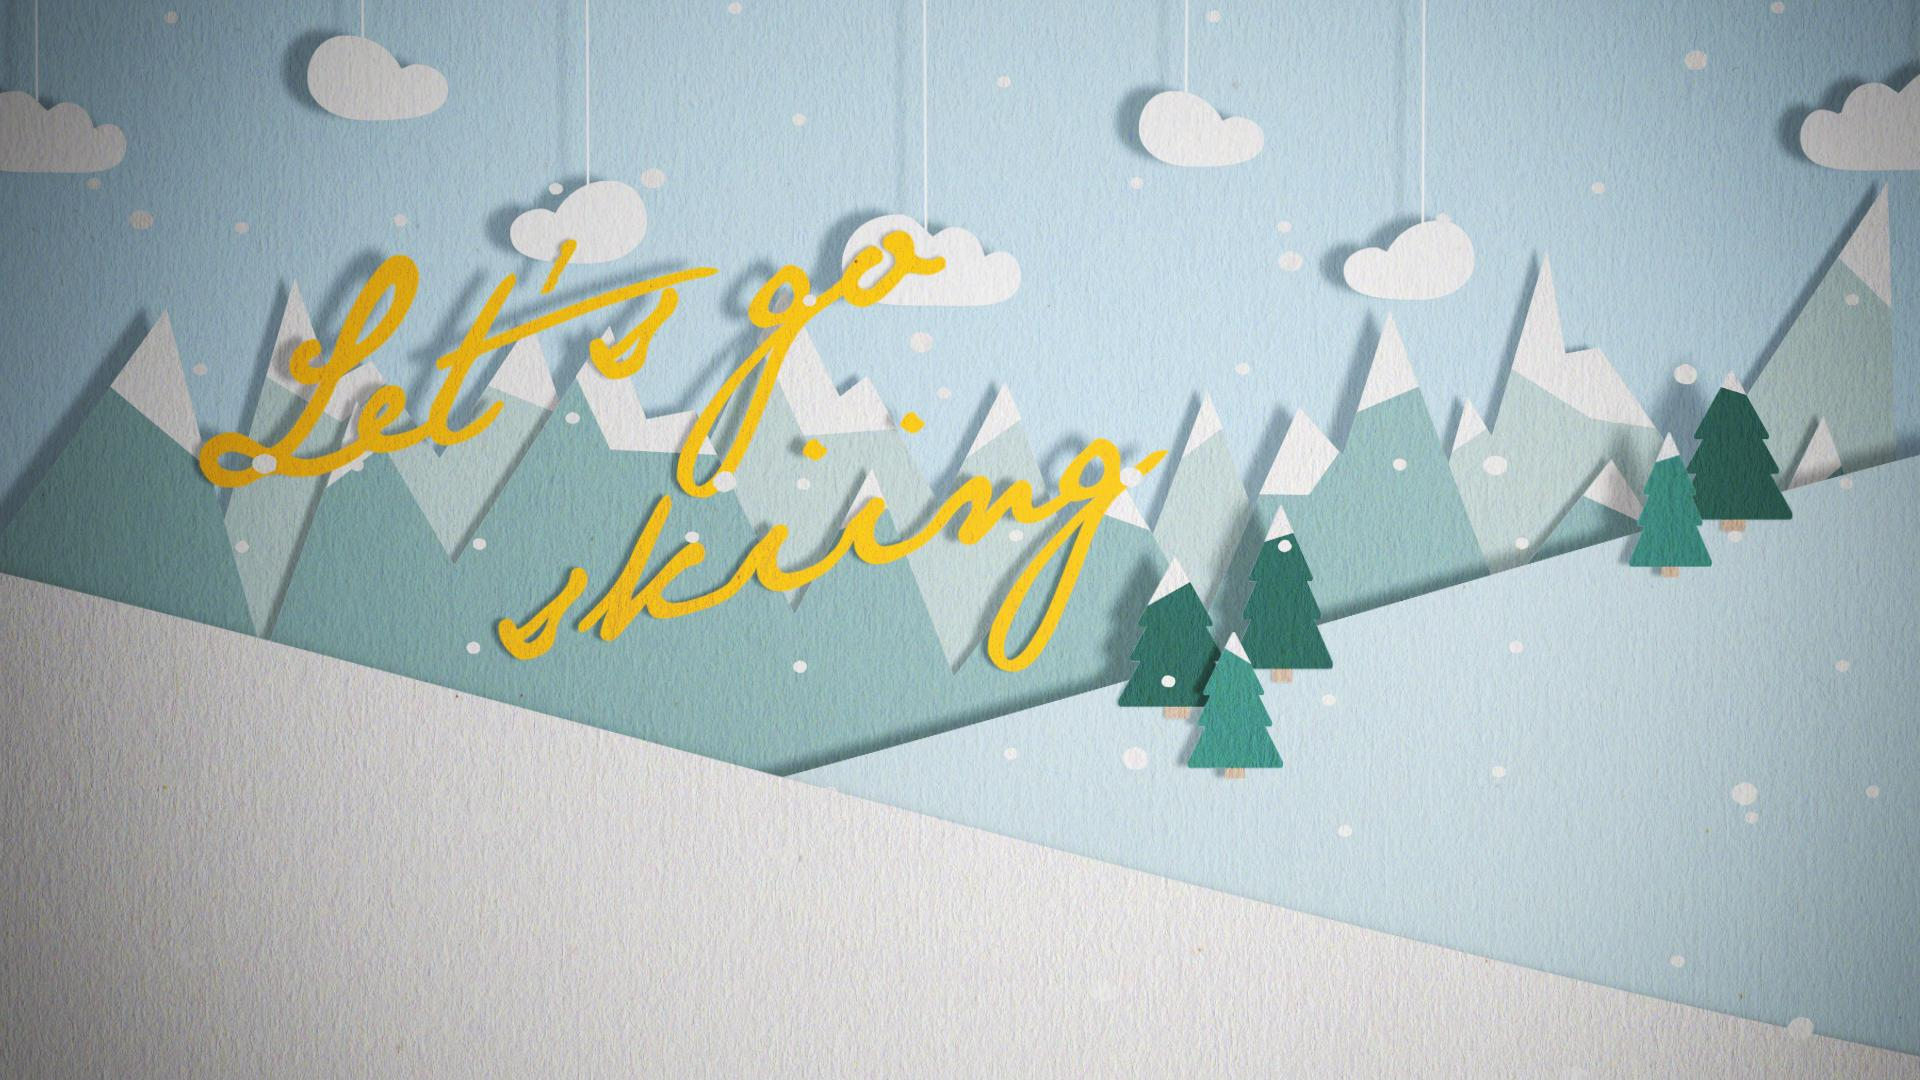 Let's go skiing! - image 3 - student project